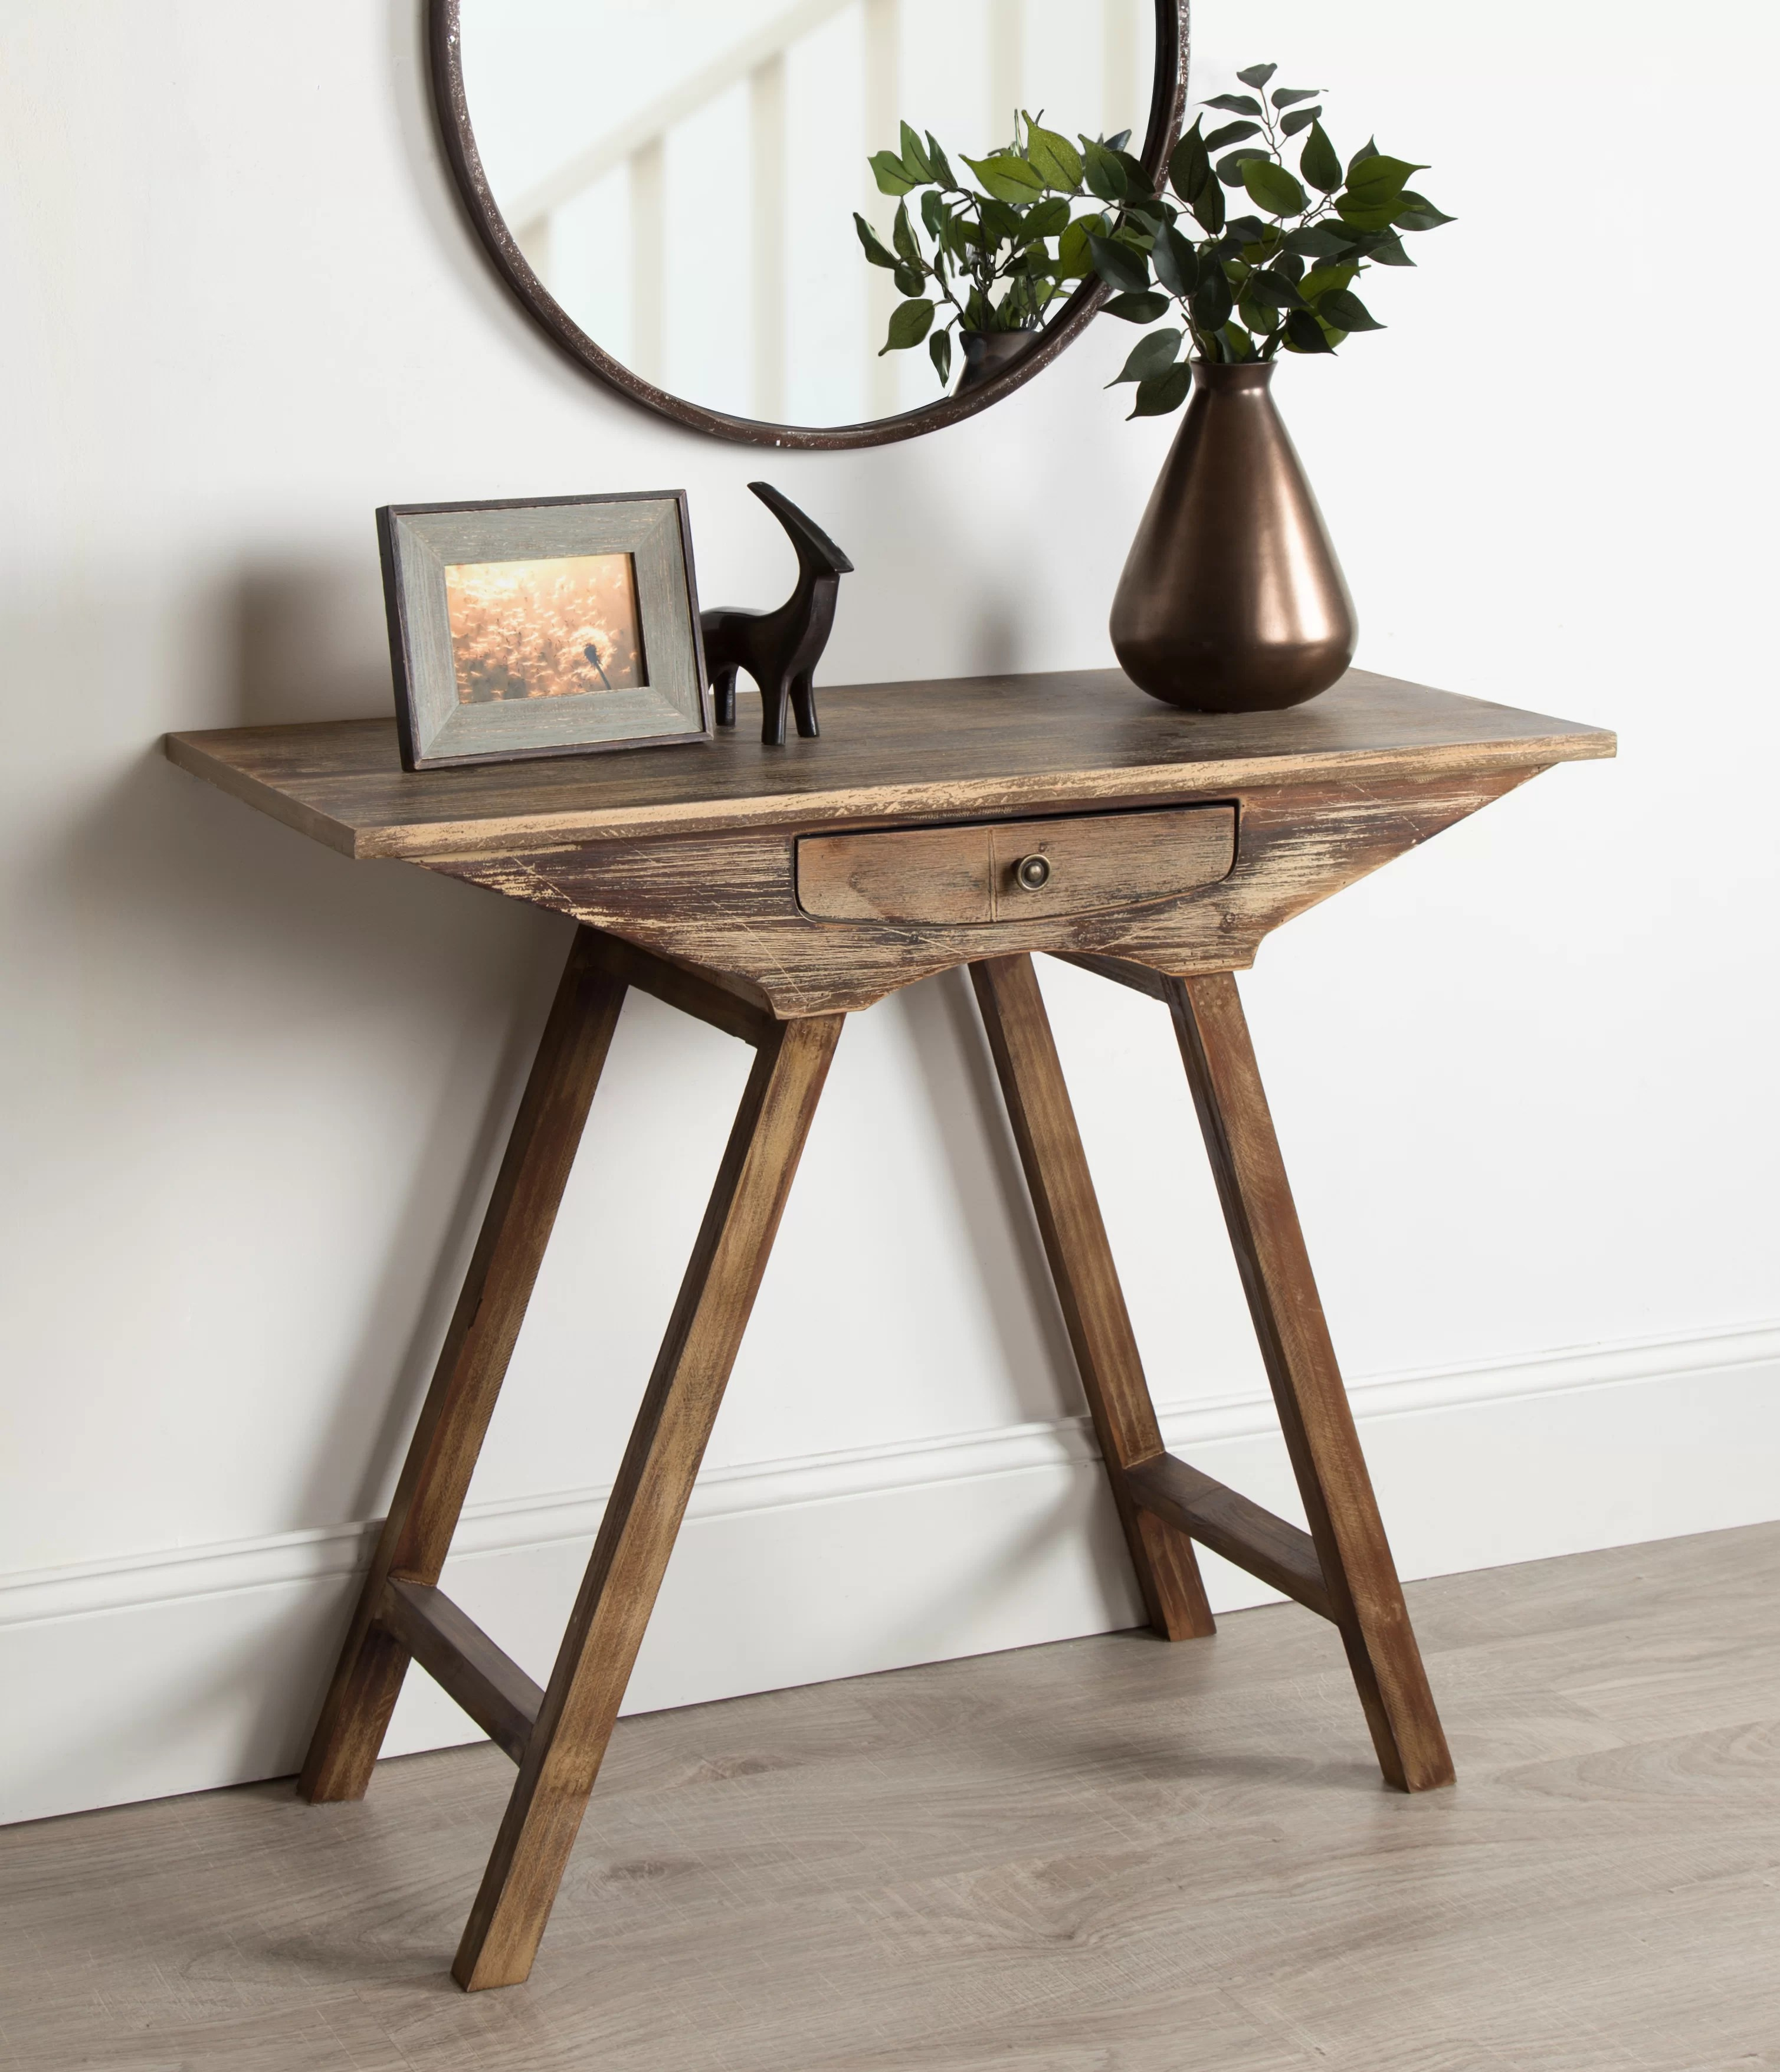 Union Rustic Pringle Chic Small Wooden Console Table Reviews Wayfair